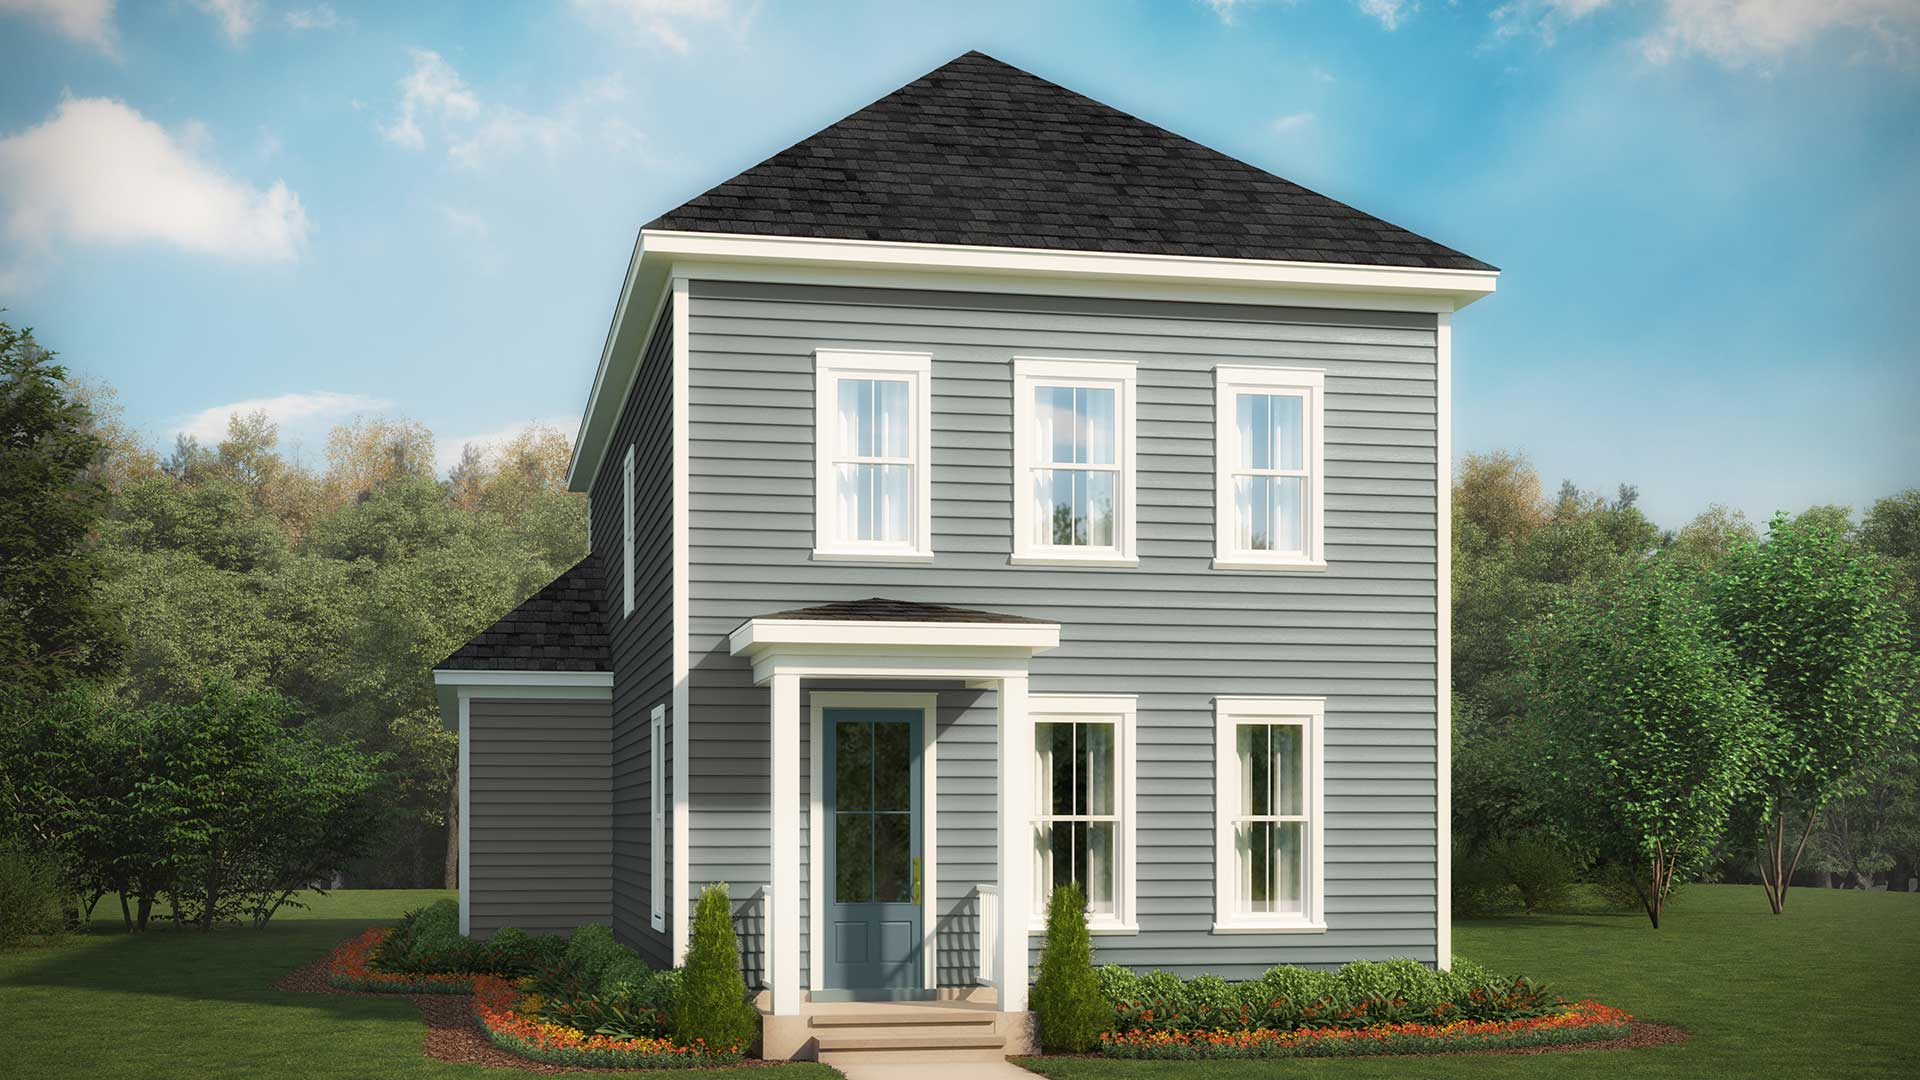 227 Summers Drive | Mayfield Plan by Stanley Martin Homes, New Homes in South Carolina